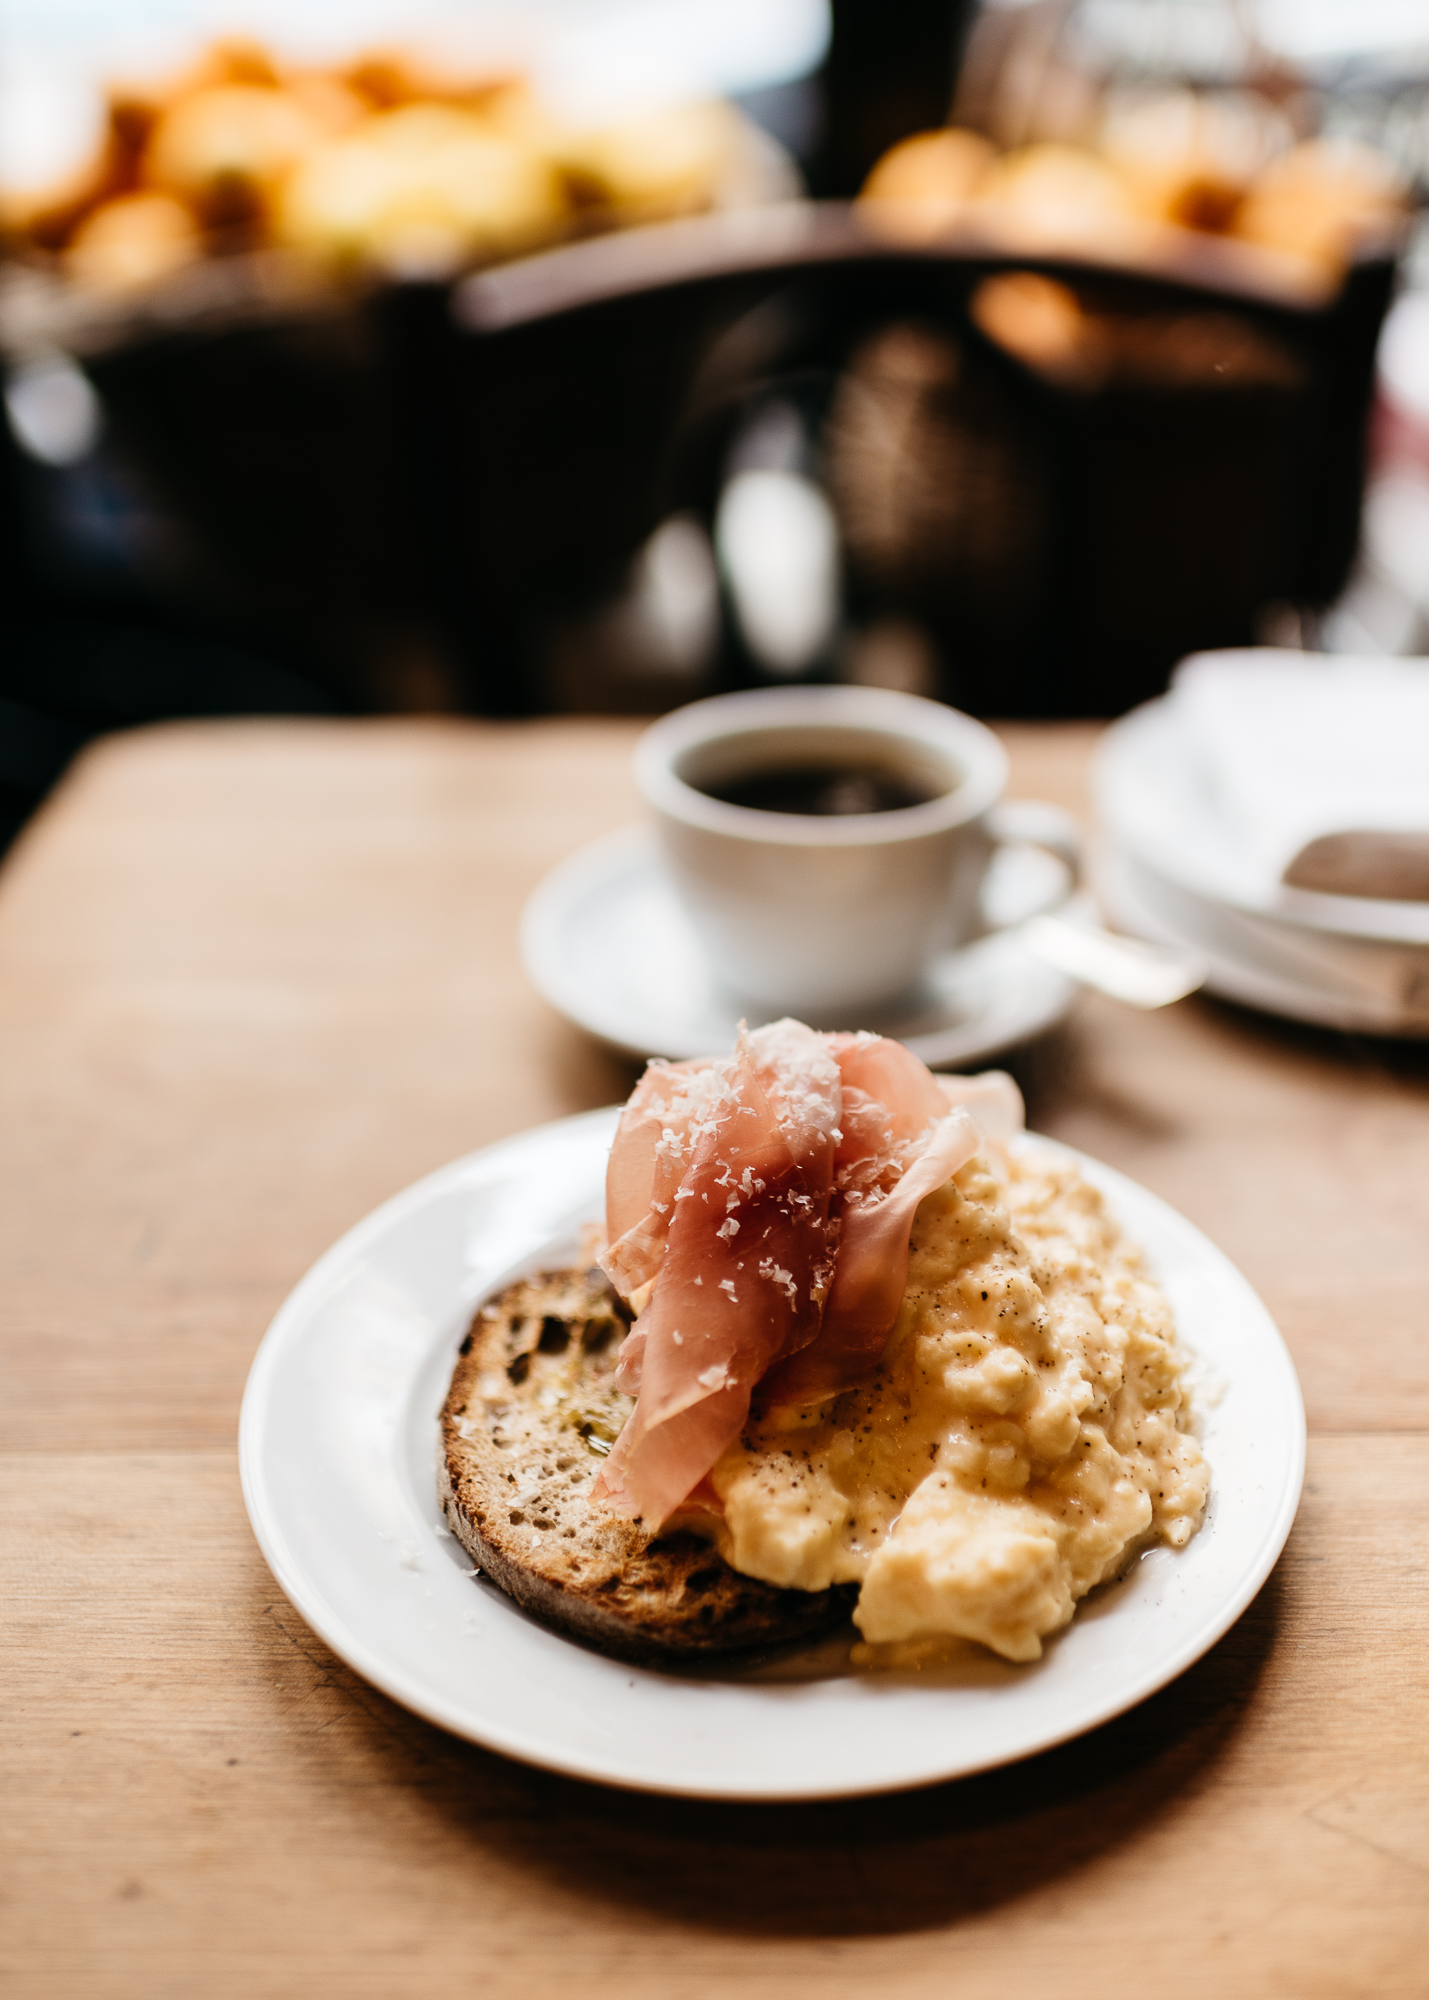 Steam scrambled eggs and prosciutto on grilled bread at Buvette Paris